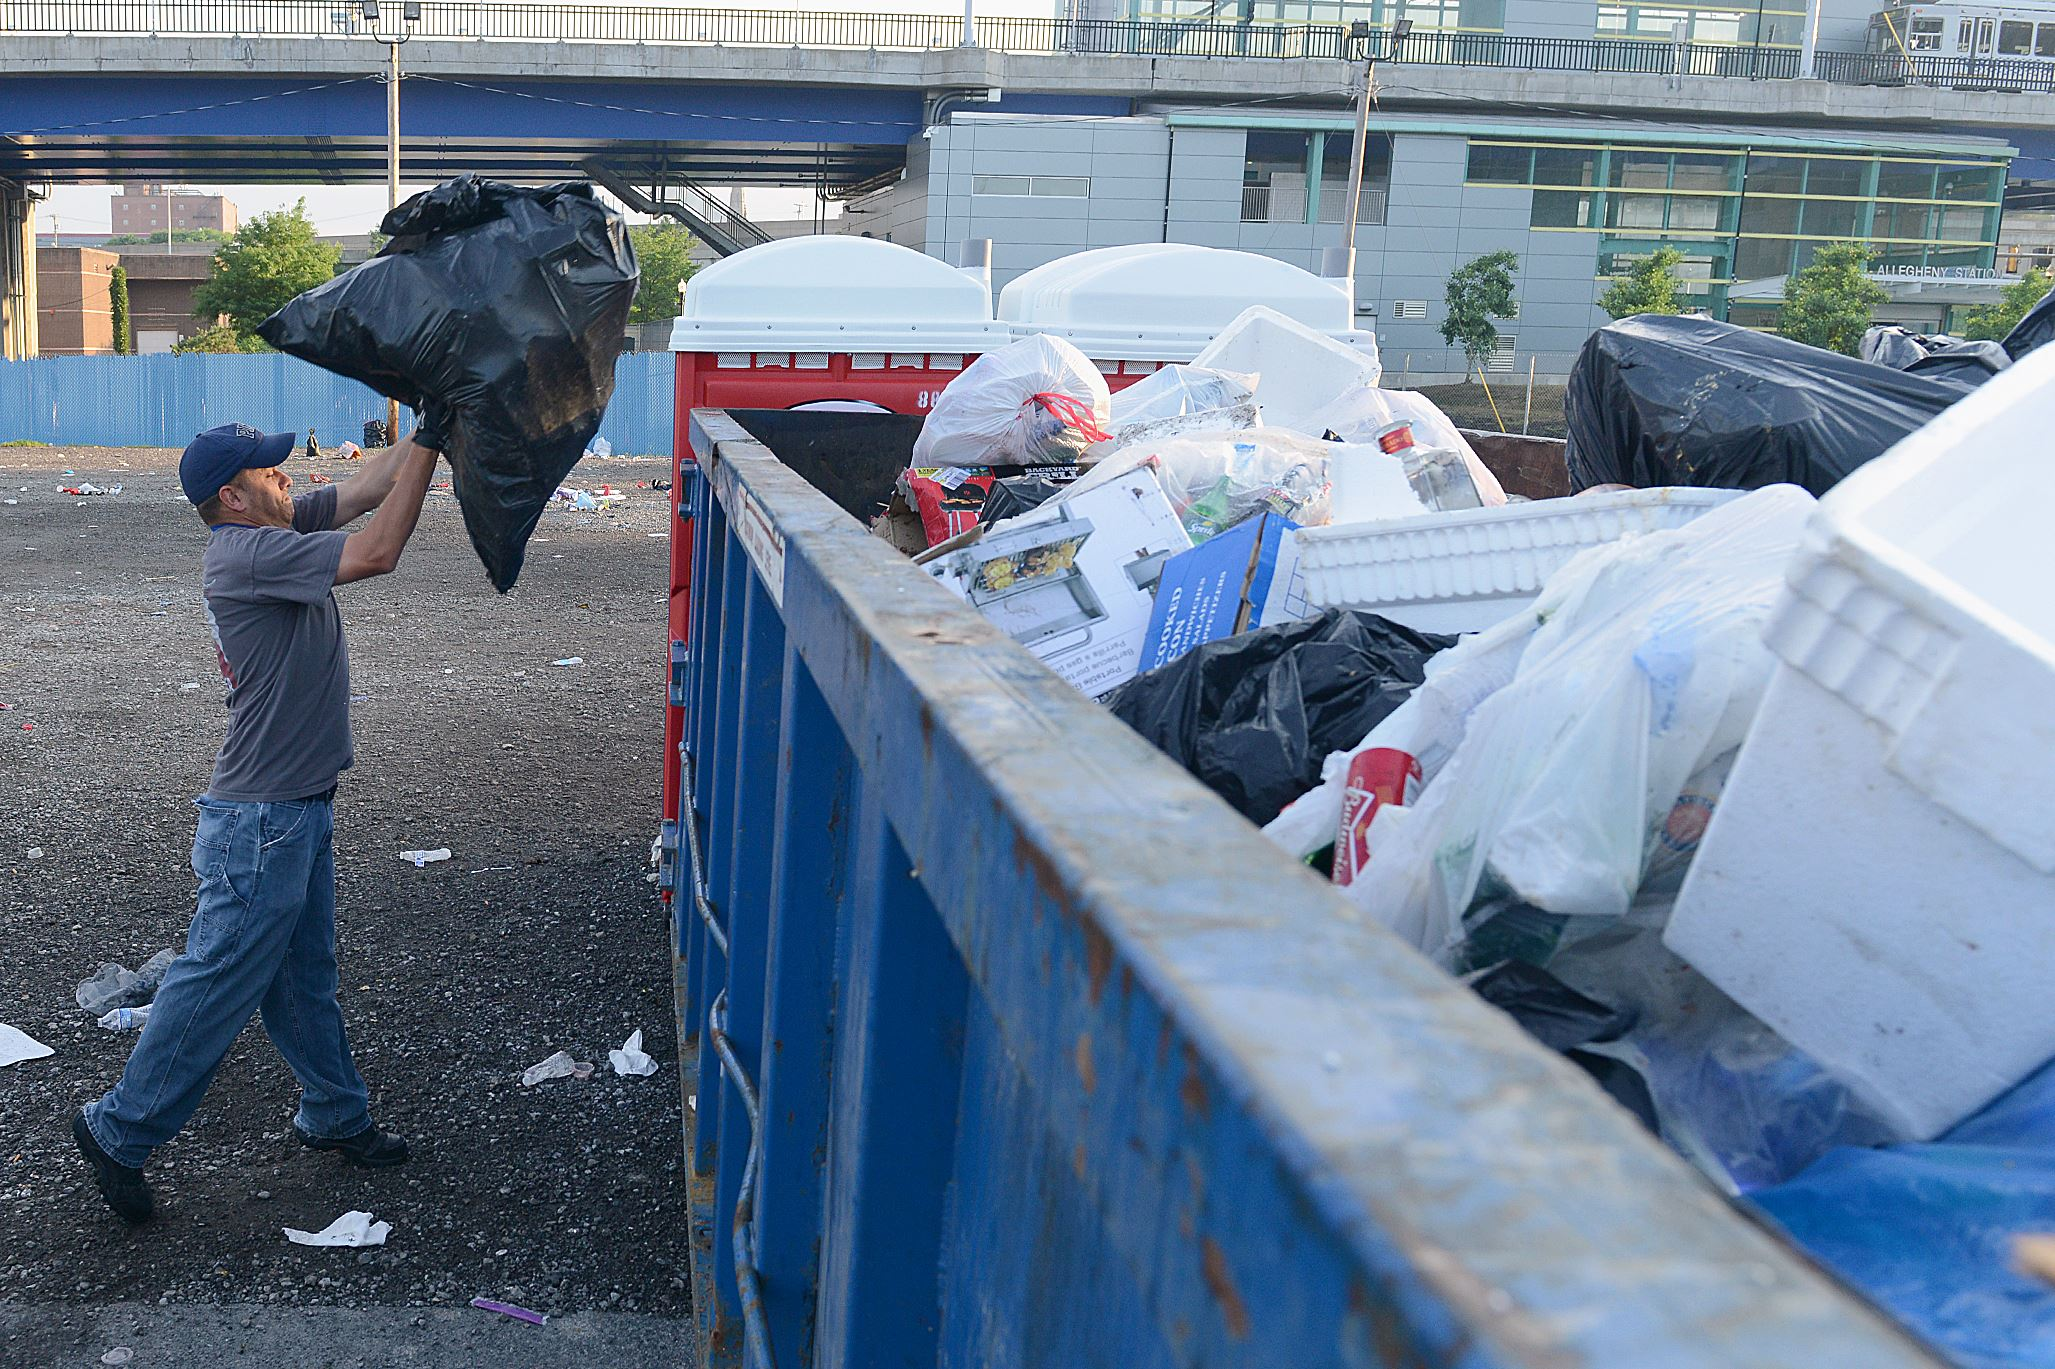 Workers clean up trash from the Carnegie Science Center parking lot on the North Shore the morning after the June 21 Luke Bryan concert.